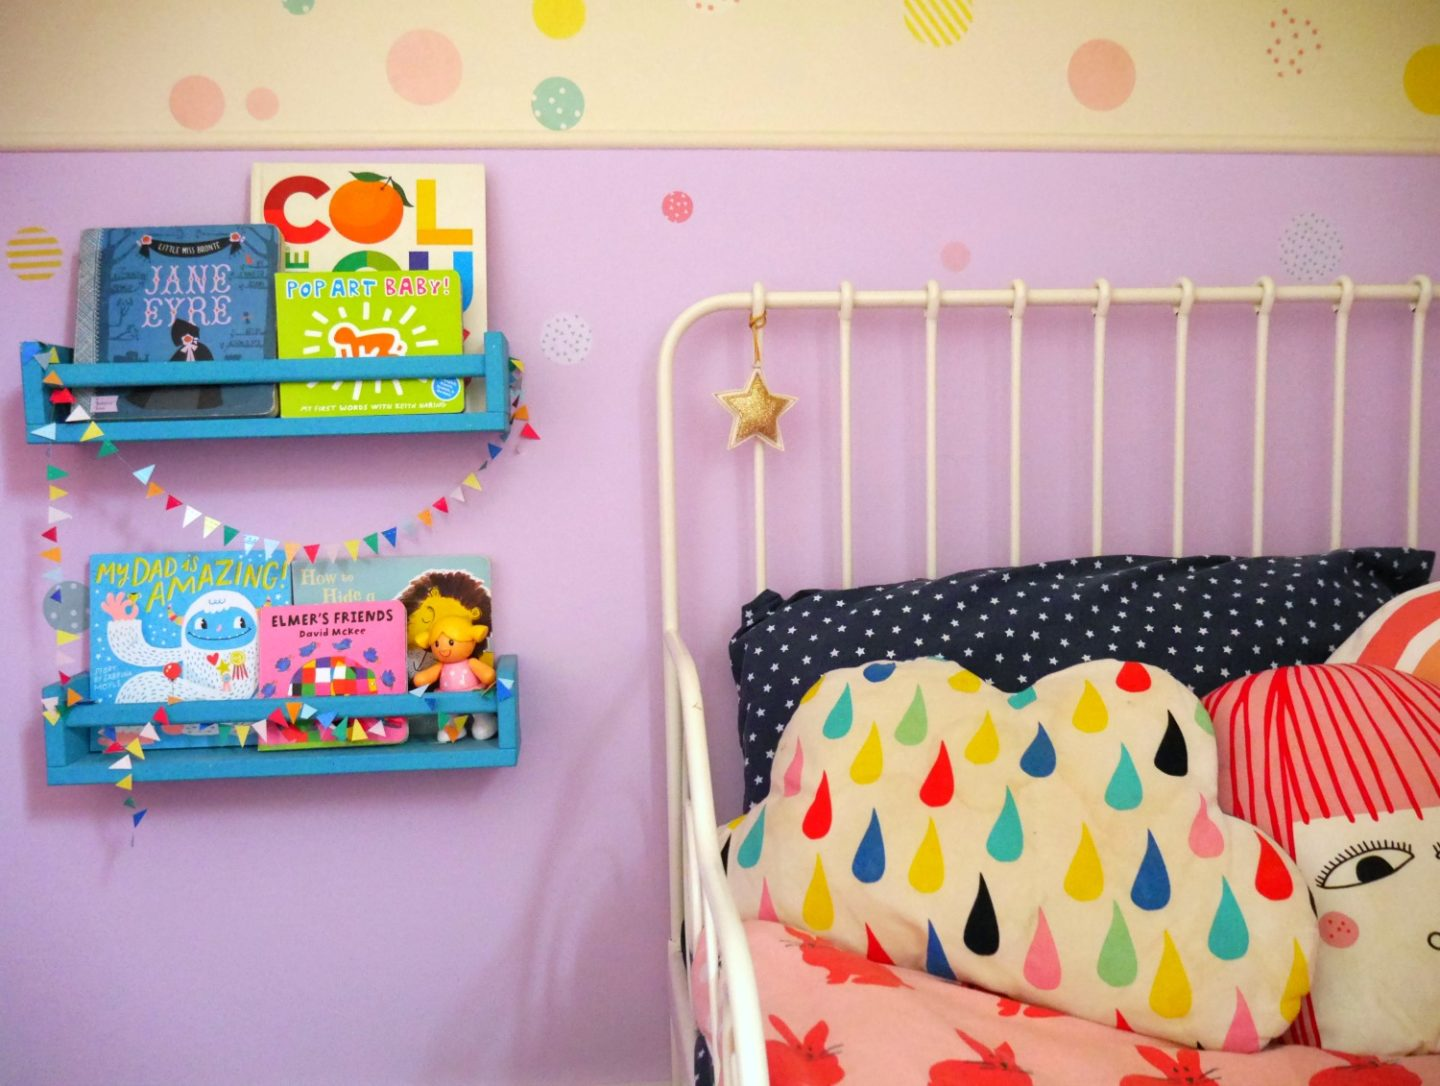 Colourful children's bedrooms - IKEA spice rack bookshelves